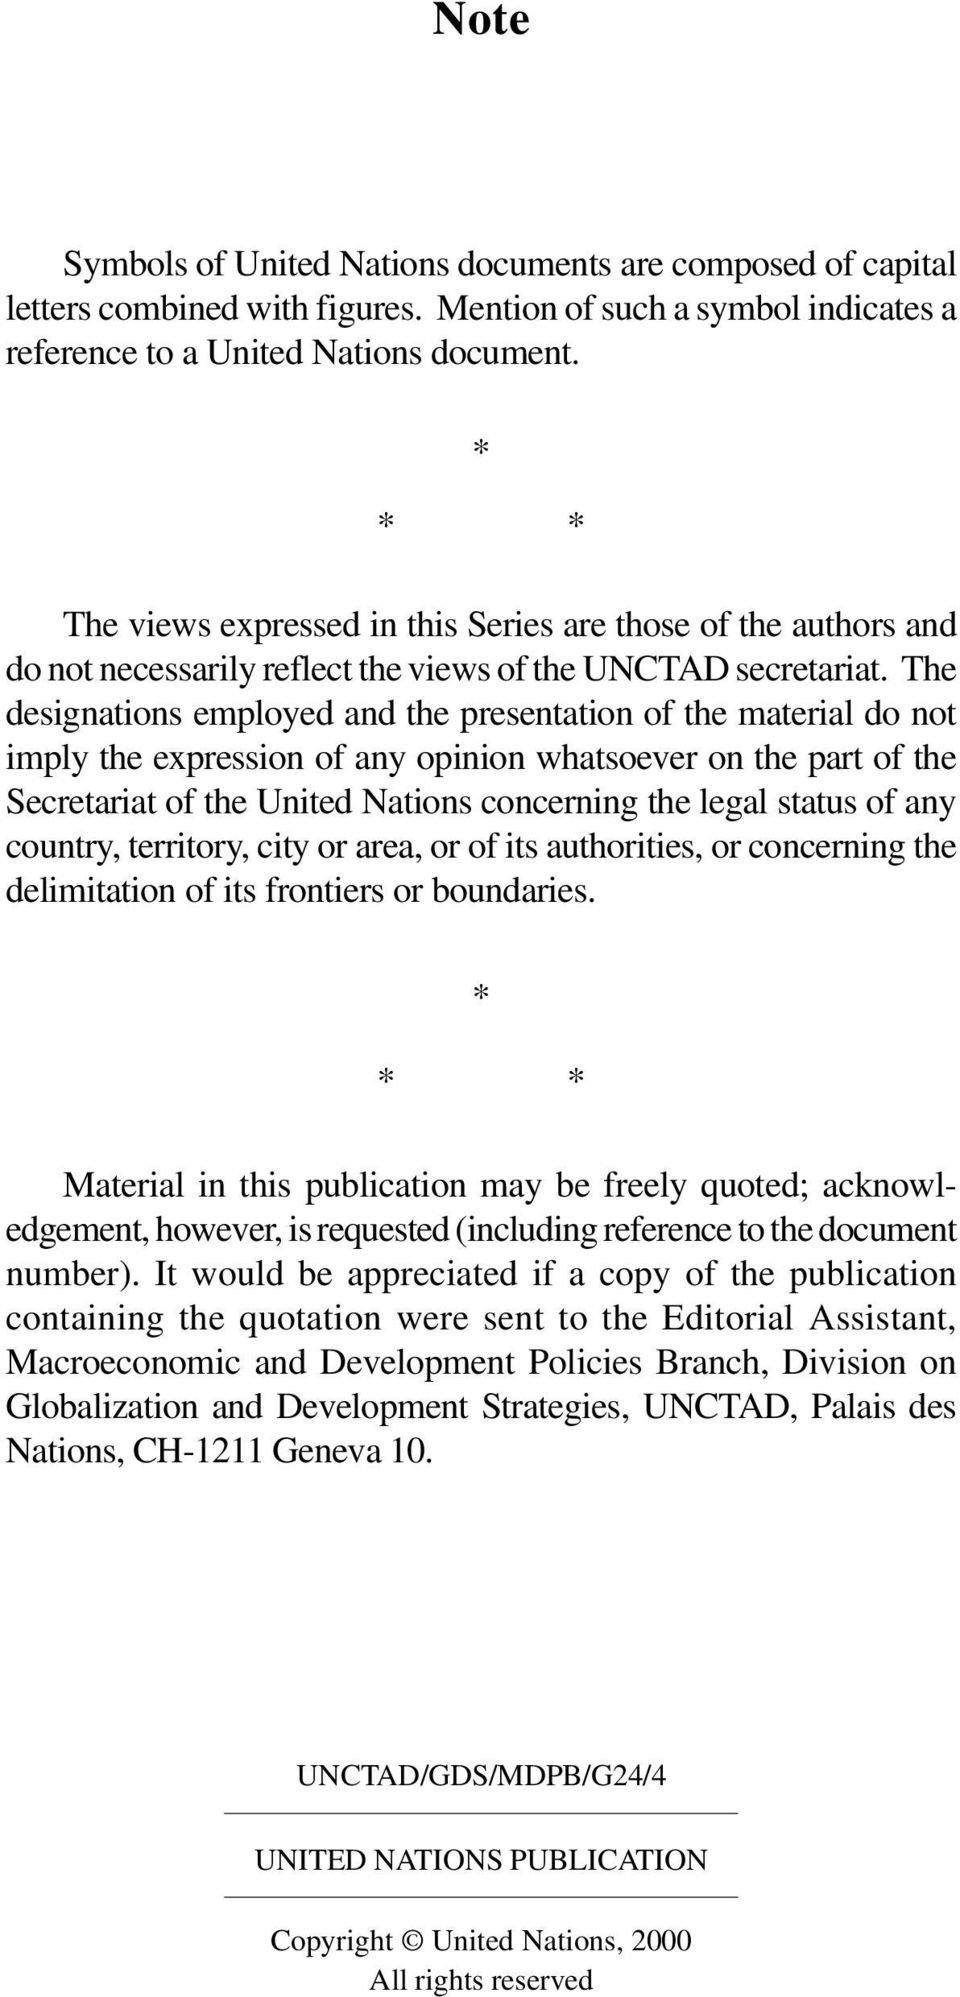 The designations employed and the presentation of the material do not imply the expression of any opinion whatsoever on the part of the Secretariat of the United Nations concerning the legal status